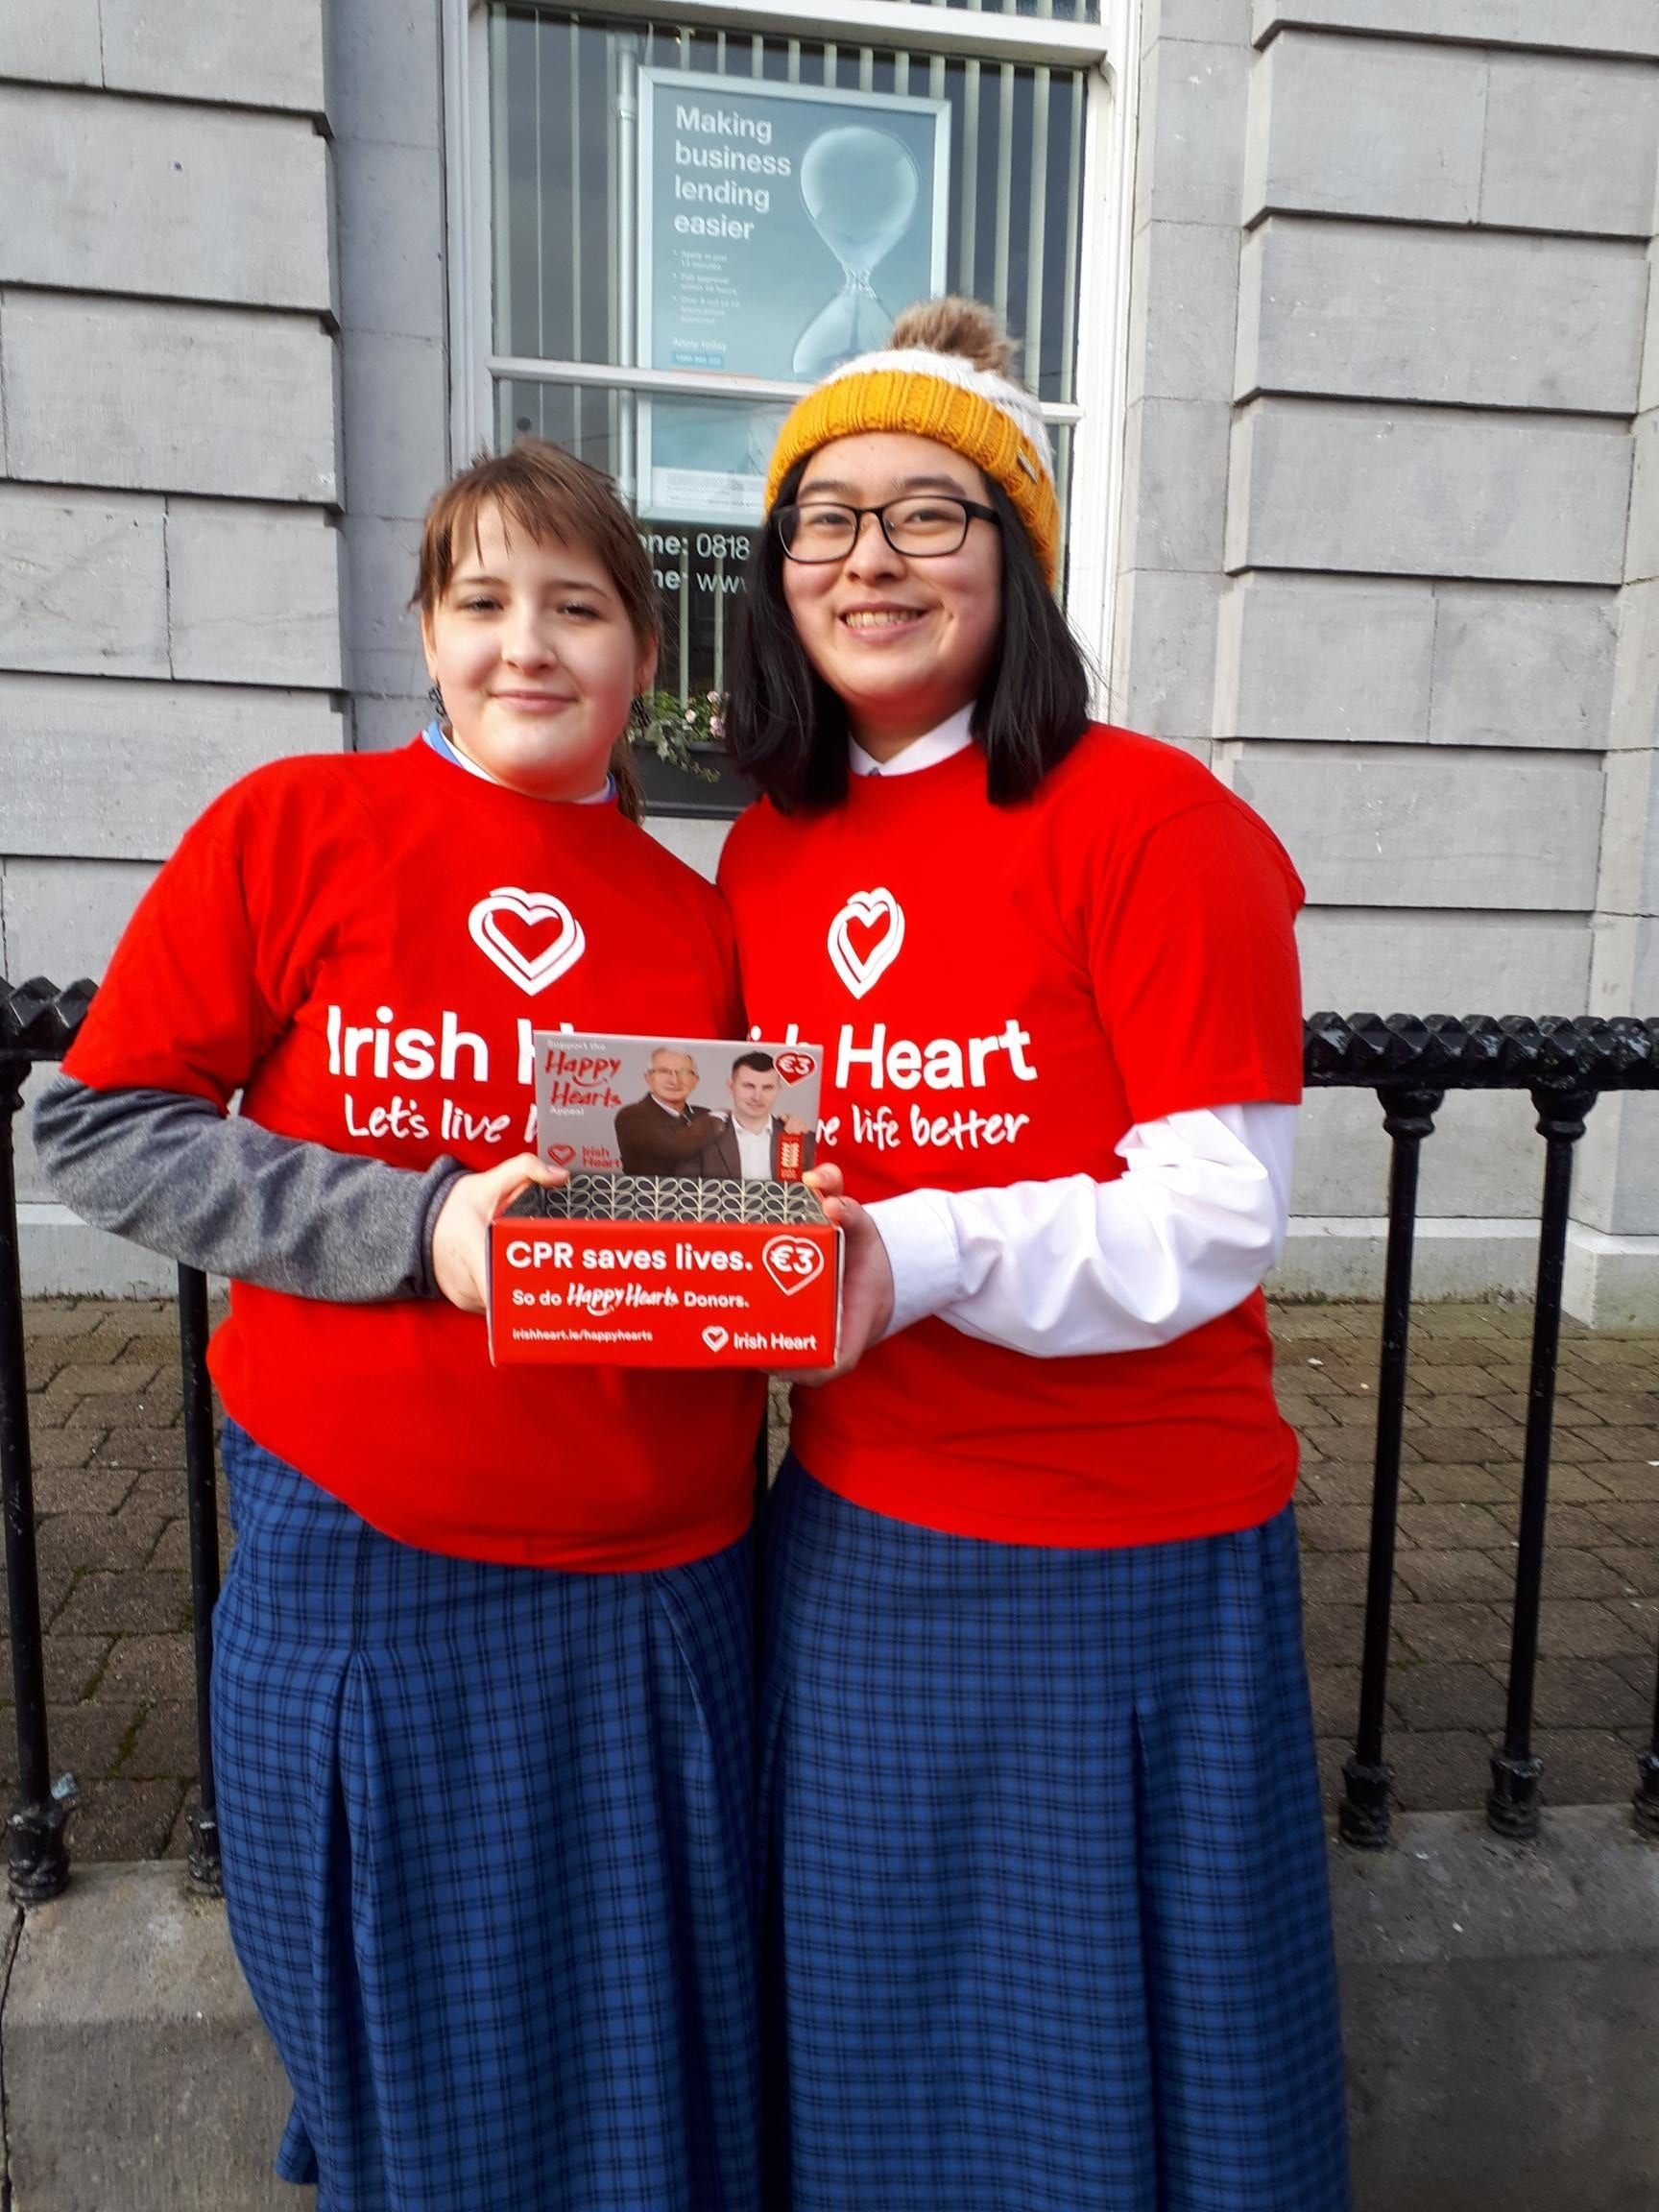 Marcelina Krzywdainska and Joanne Lai fundraising for the Irish Heart Foundation